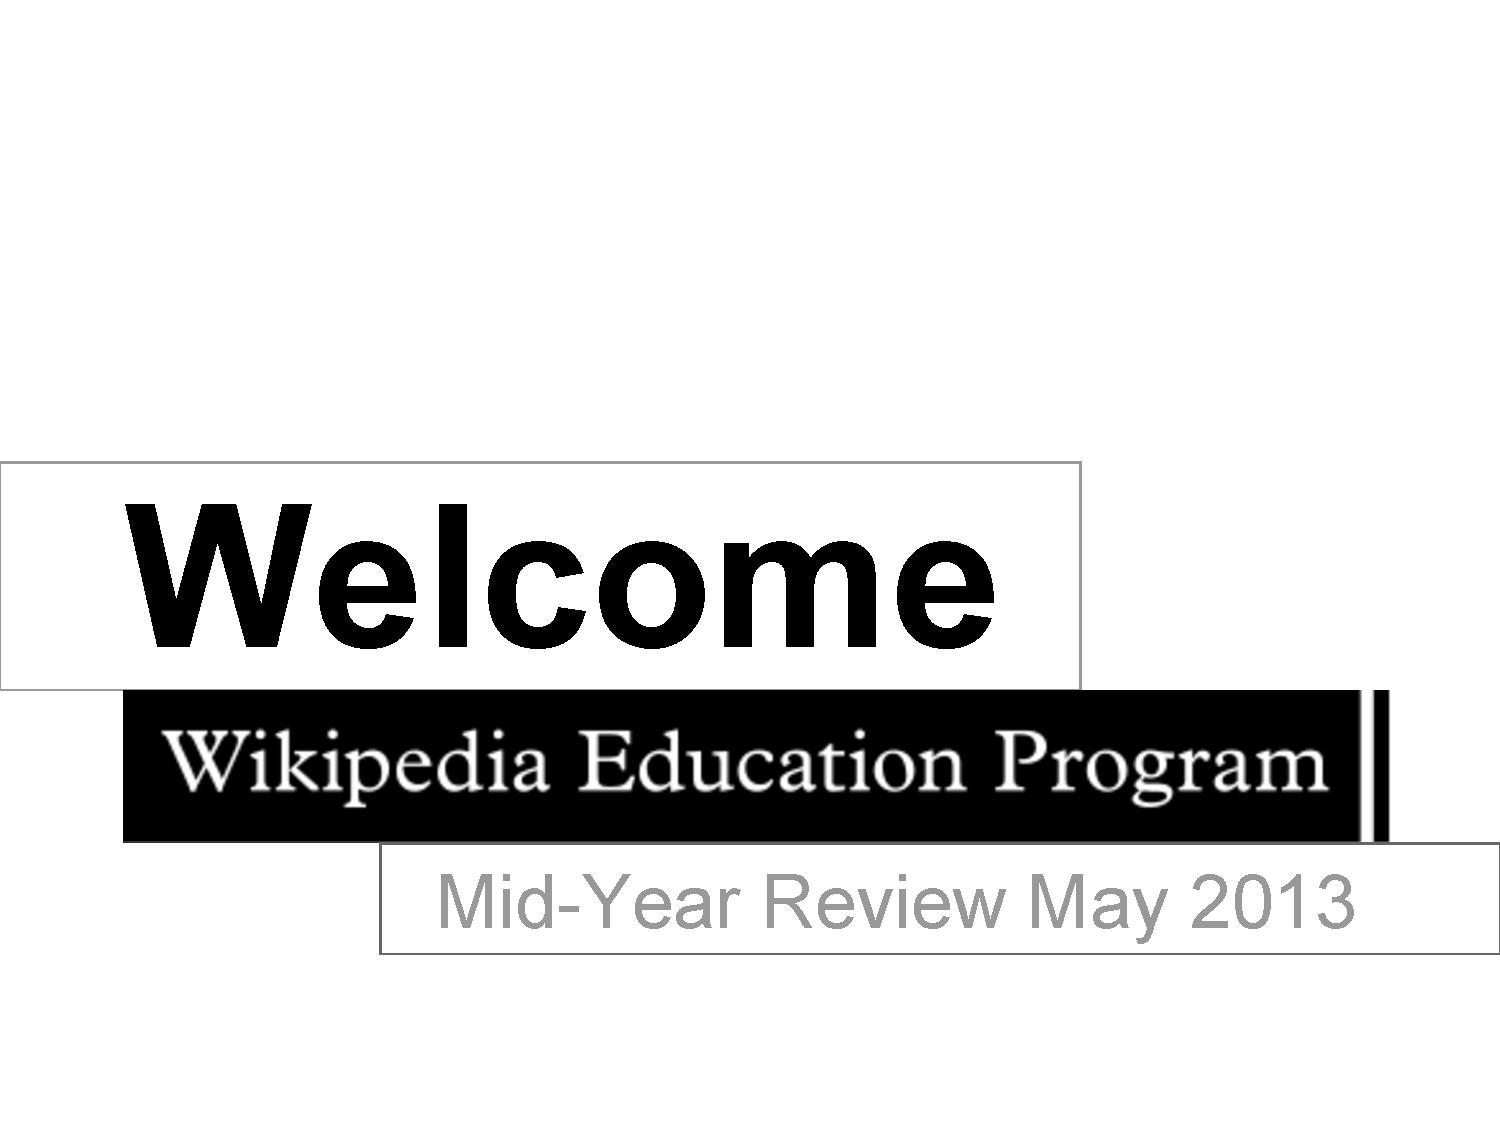 File:Wikipedia Education Program Mid-Year Review May 2013